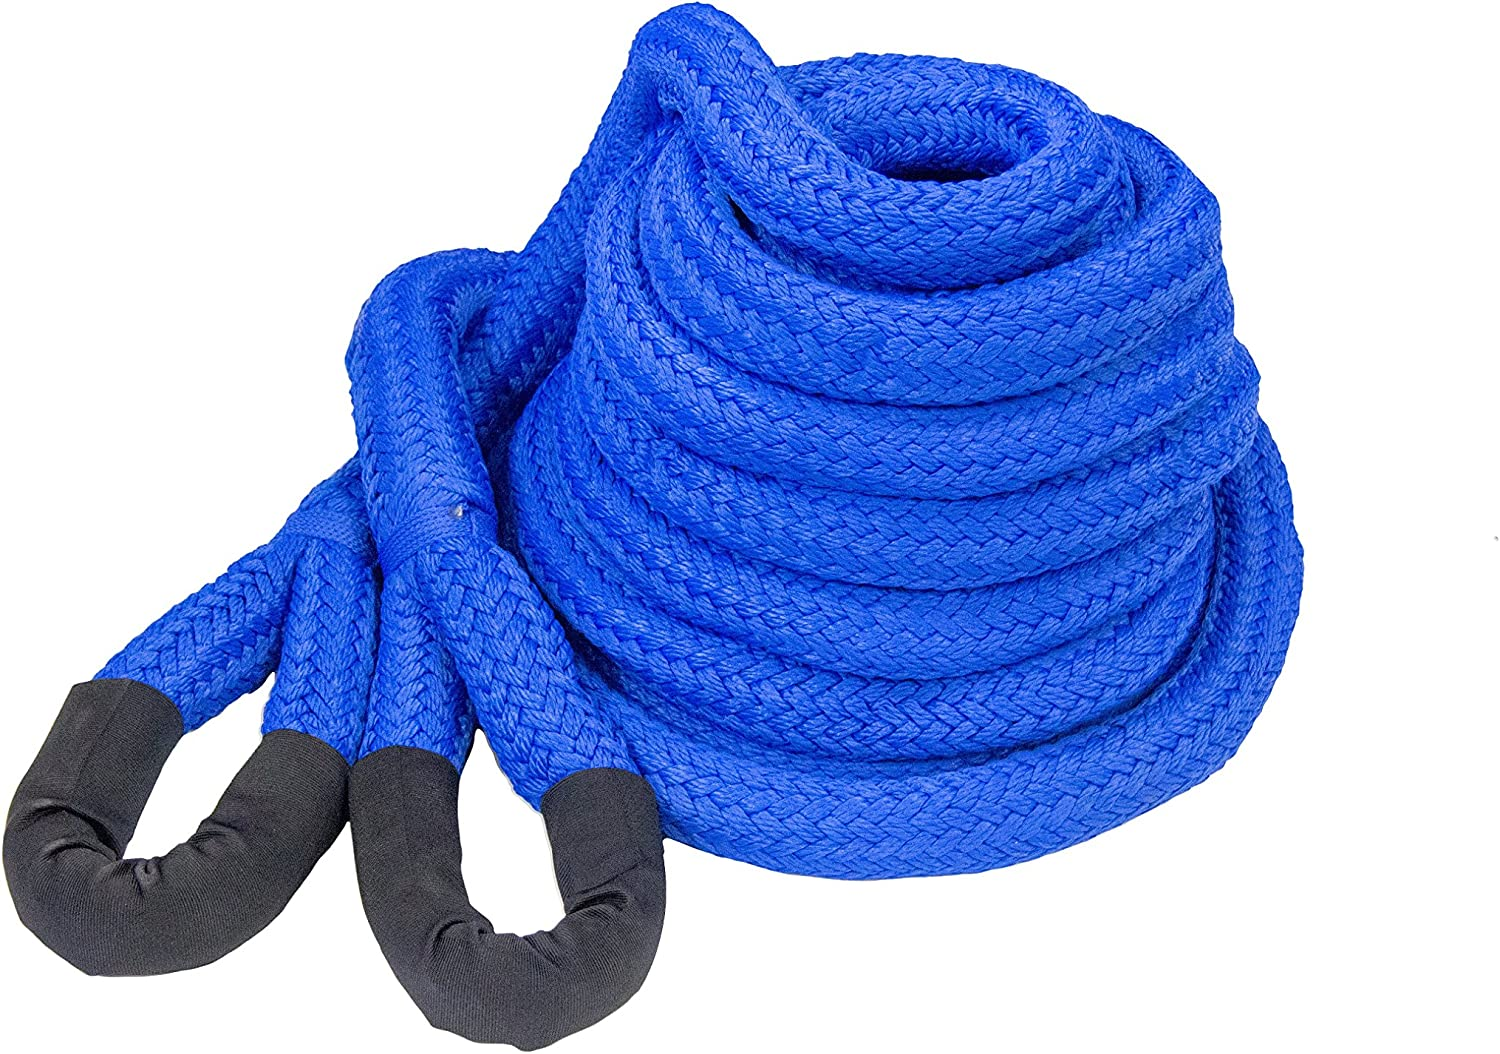 3//4 x 20 DitchPig 448511 Kinetic Energy Vehicle Recovery Double Nylon Braided Rope with Mesh Bag